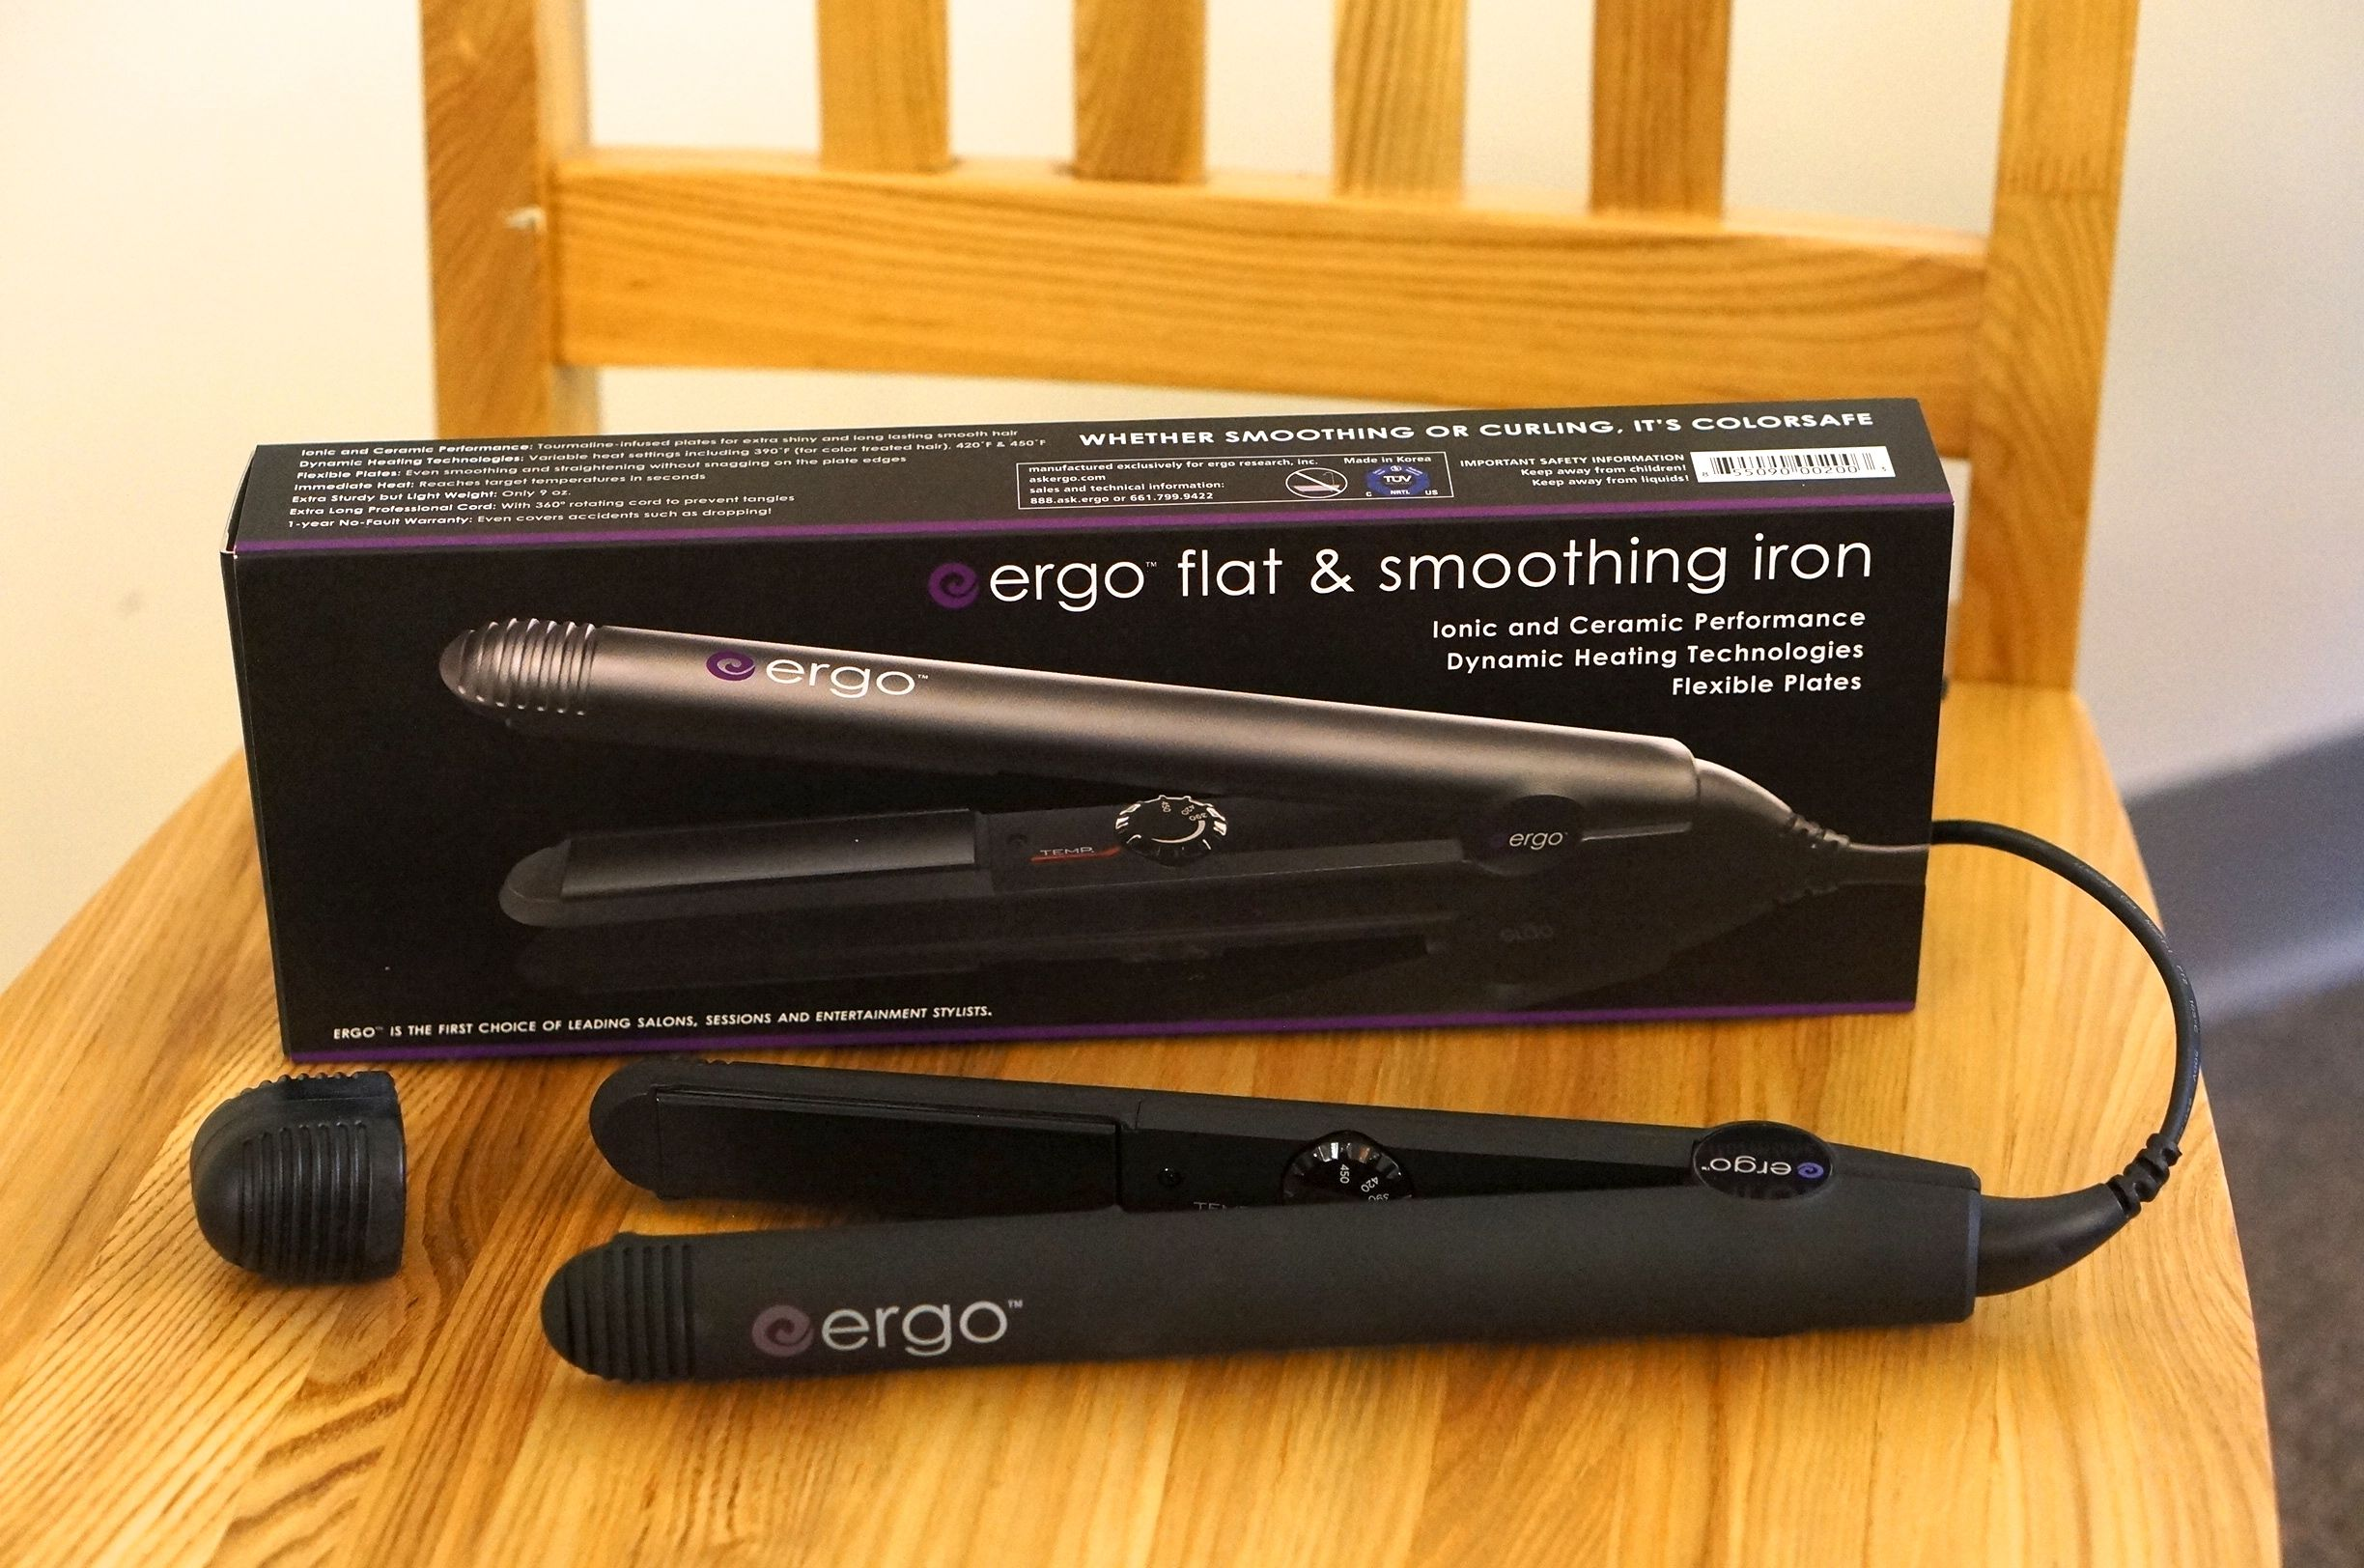 How to Use the Ergo flat iron to curl hair